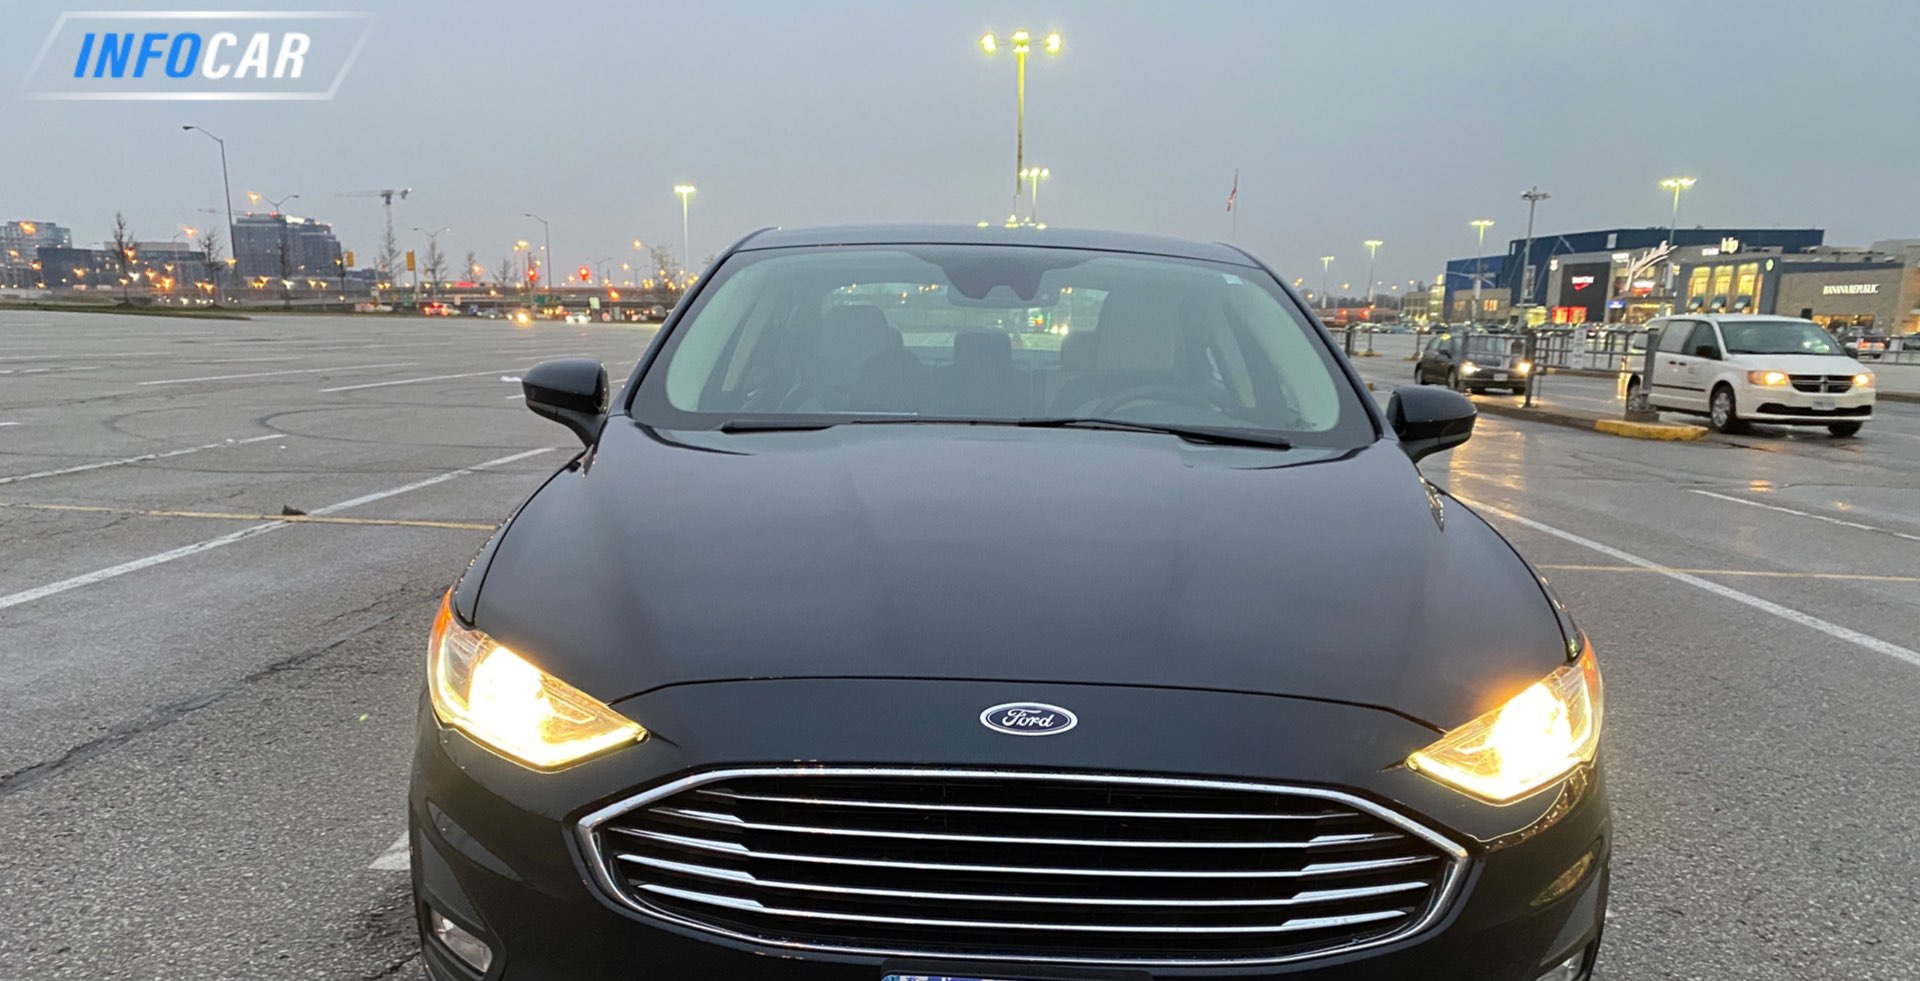 2020 Ford Fusion SE - INFOCAR - Toronto's Most Comprehensive New and Used Auto Trading Platform